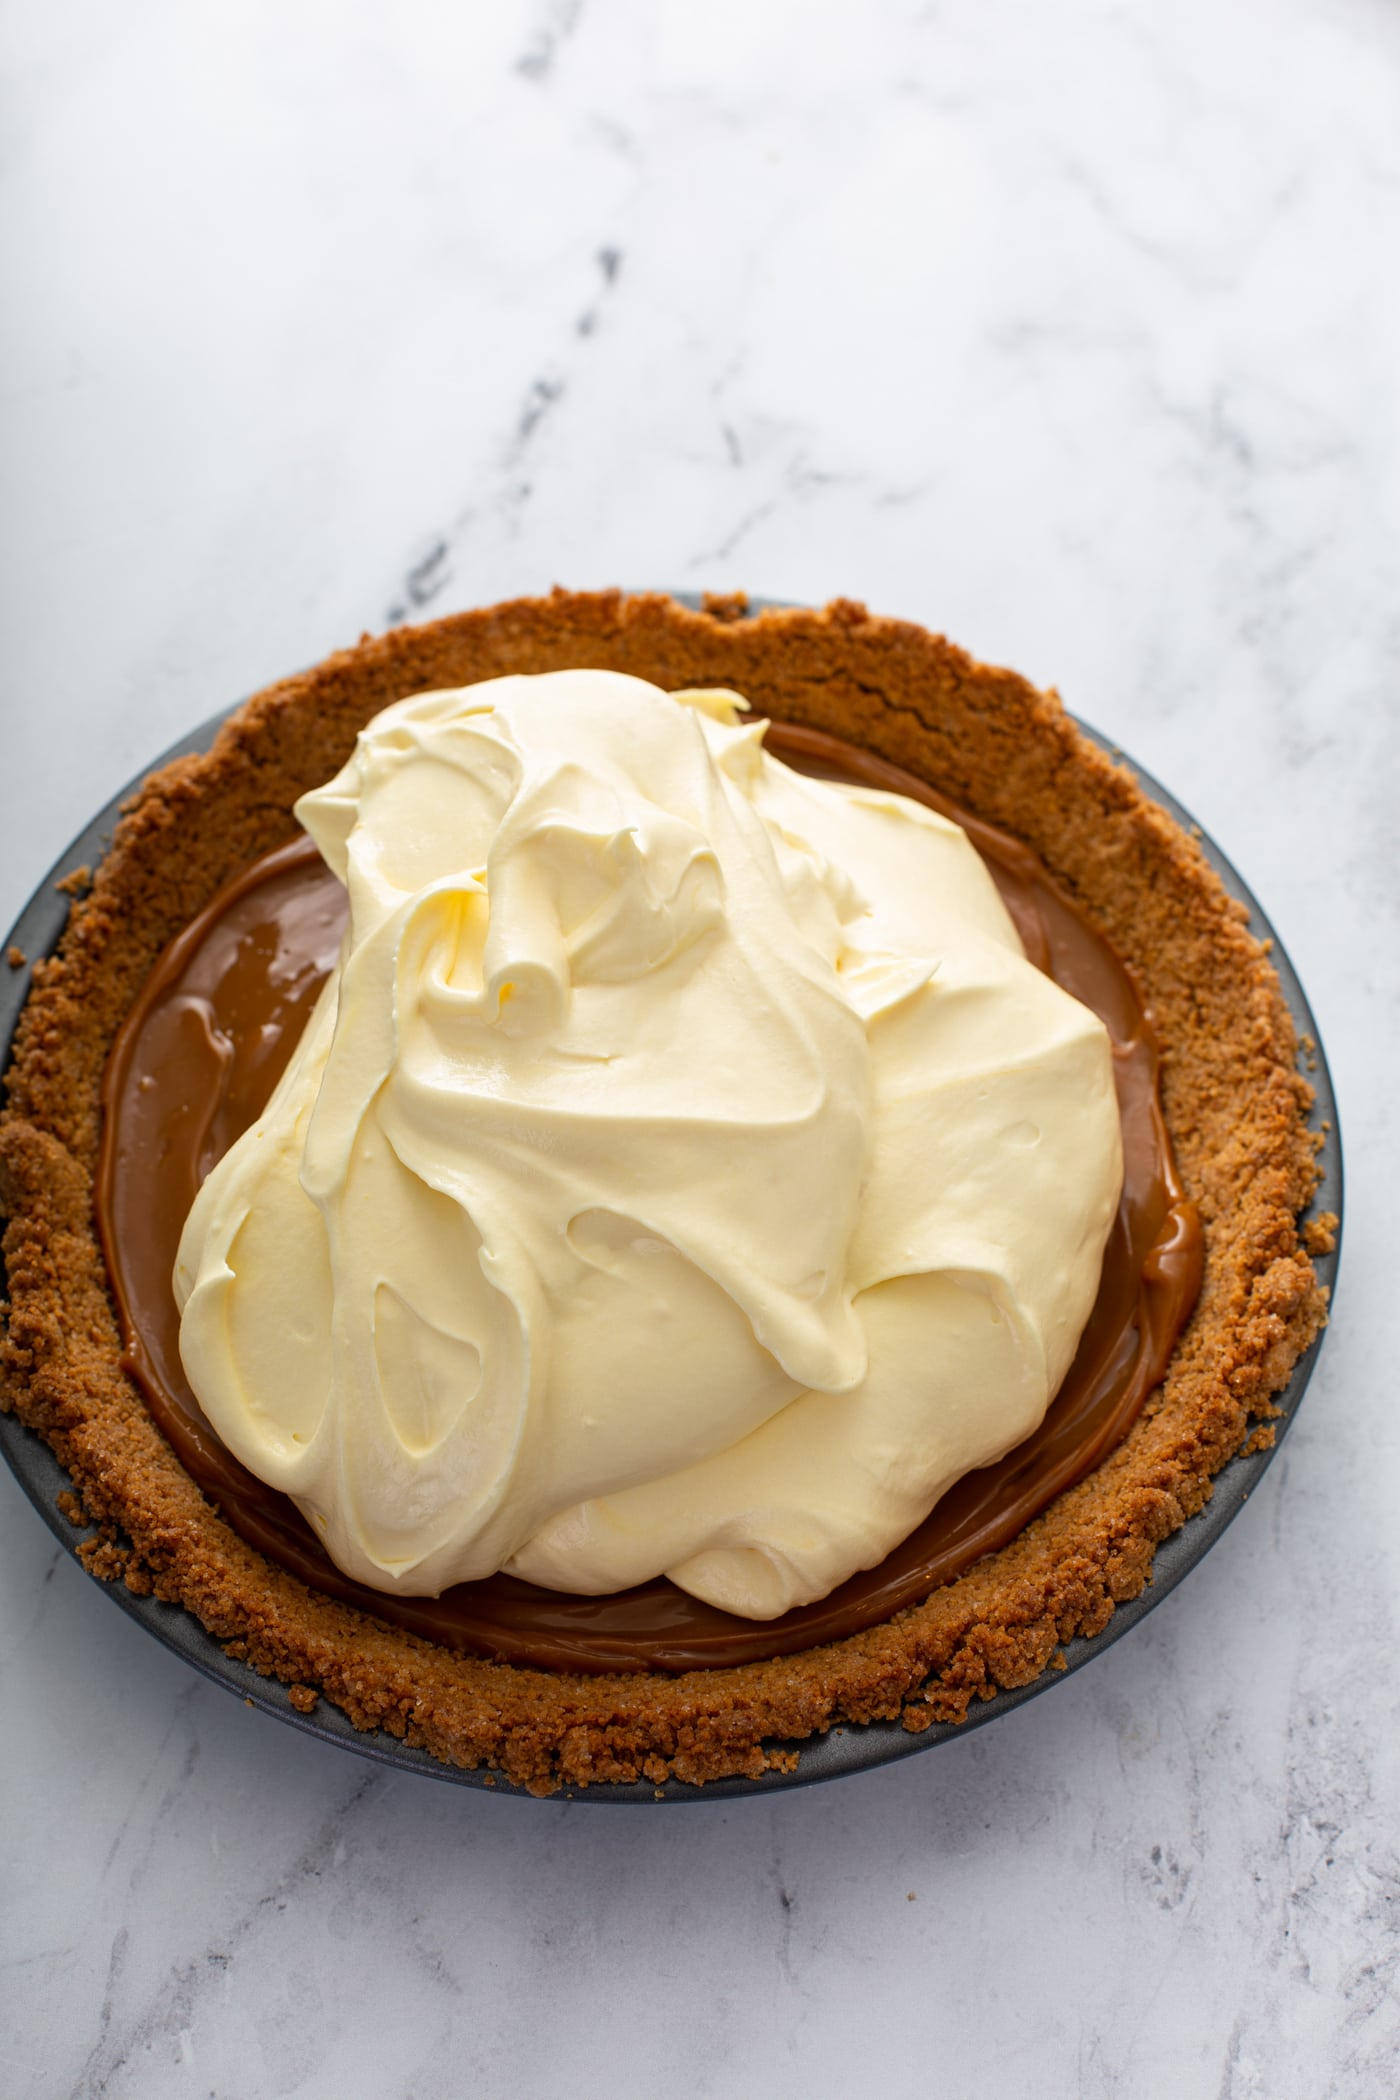 A graham cracker crust filled with dulce de leche and banana cream filling that has been added, but not yet spread all over the dulce de leche.